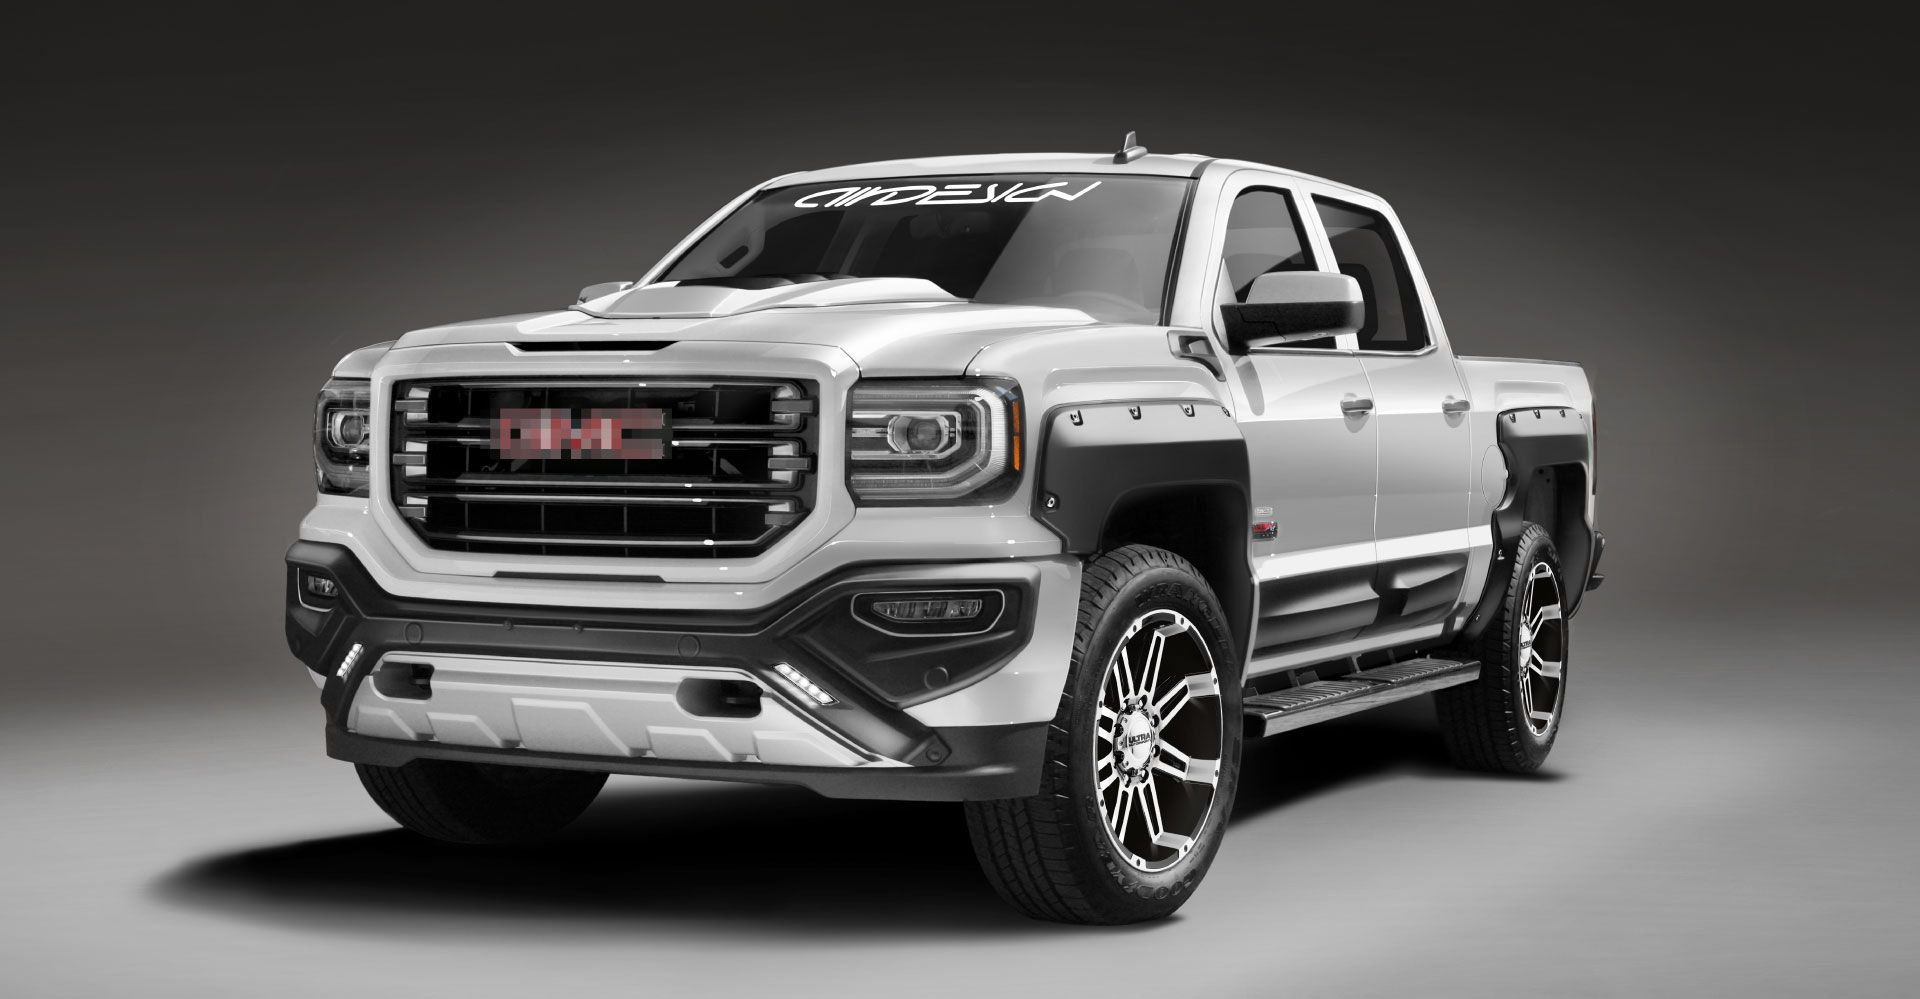 Gmc Sierra Air Design Usa The Ultimate Accessories Collection